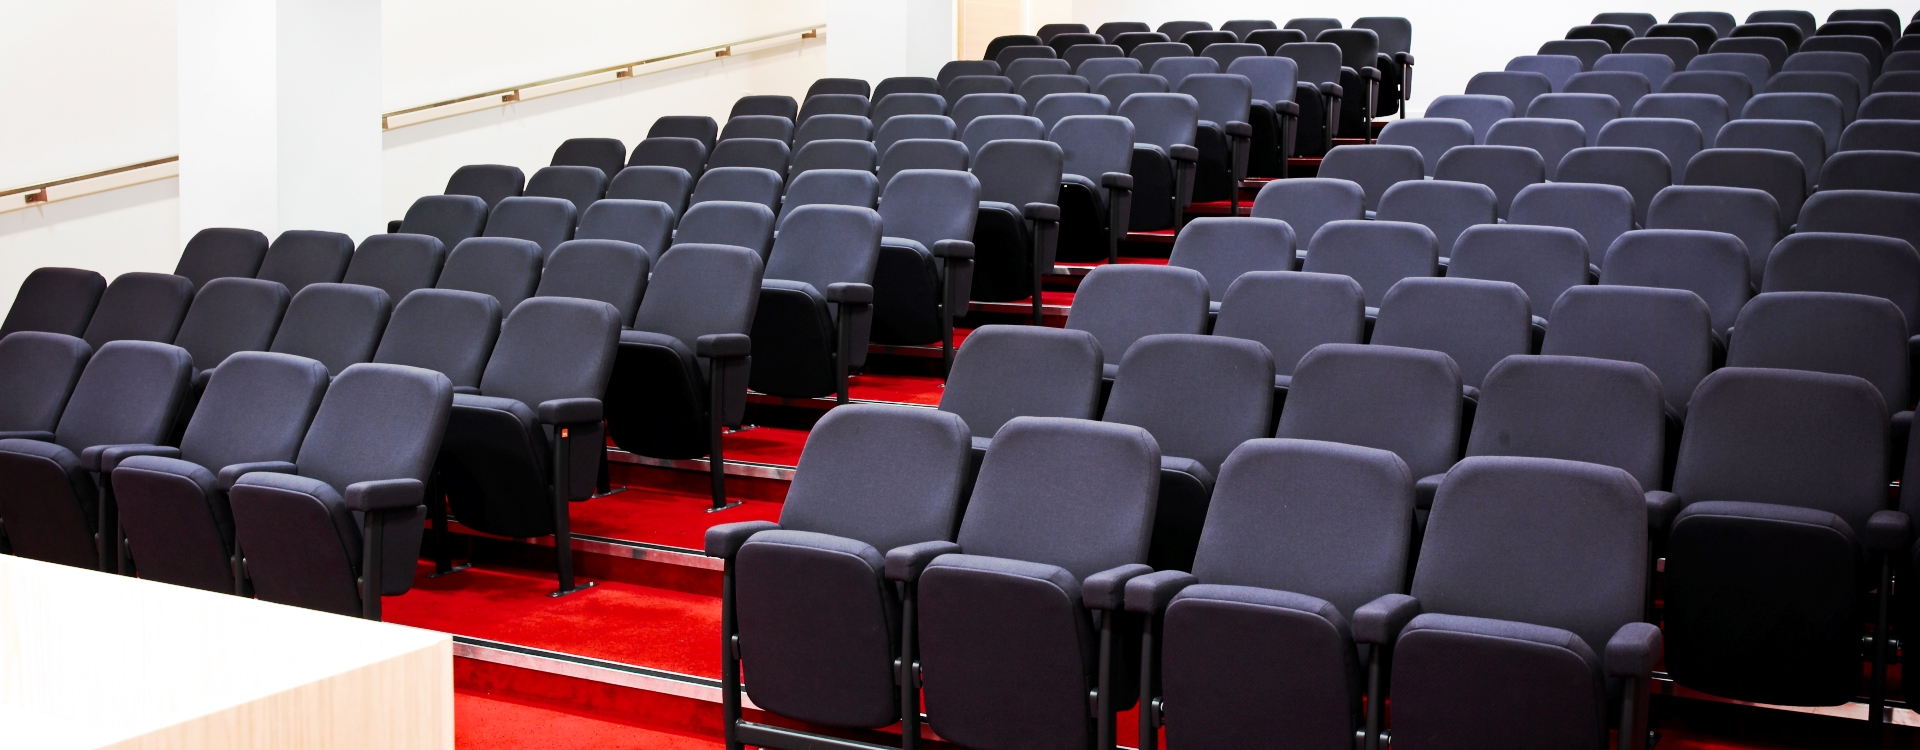 Auditorium_seating